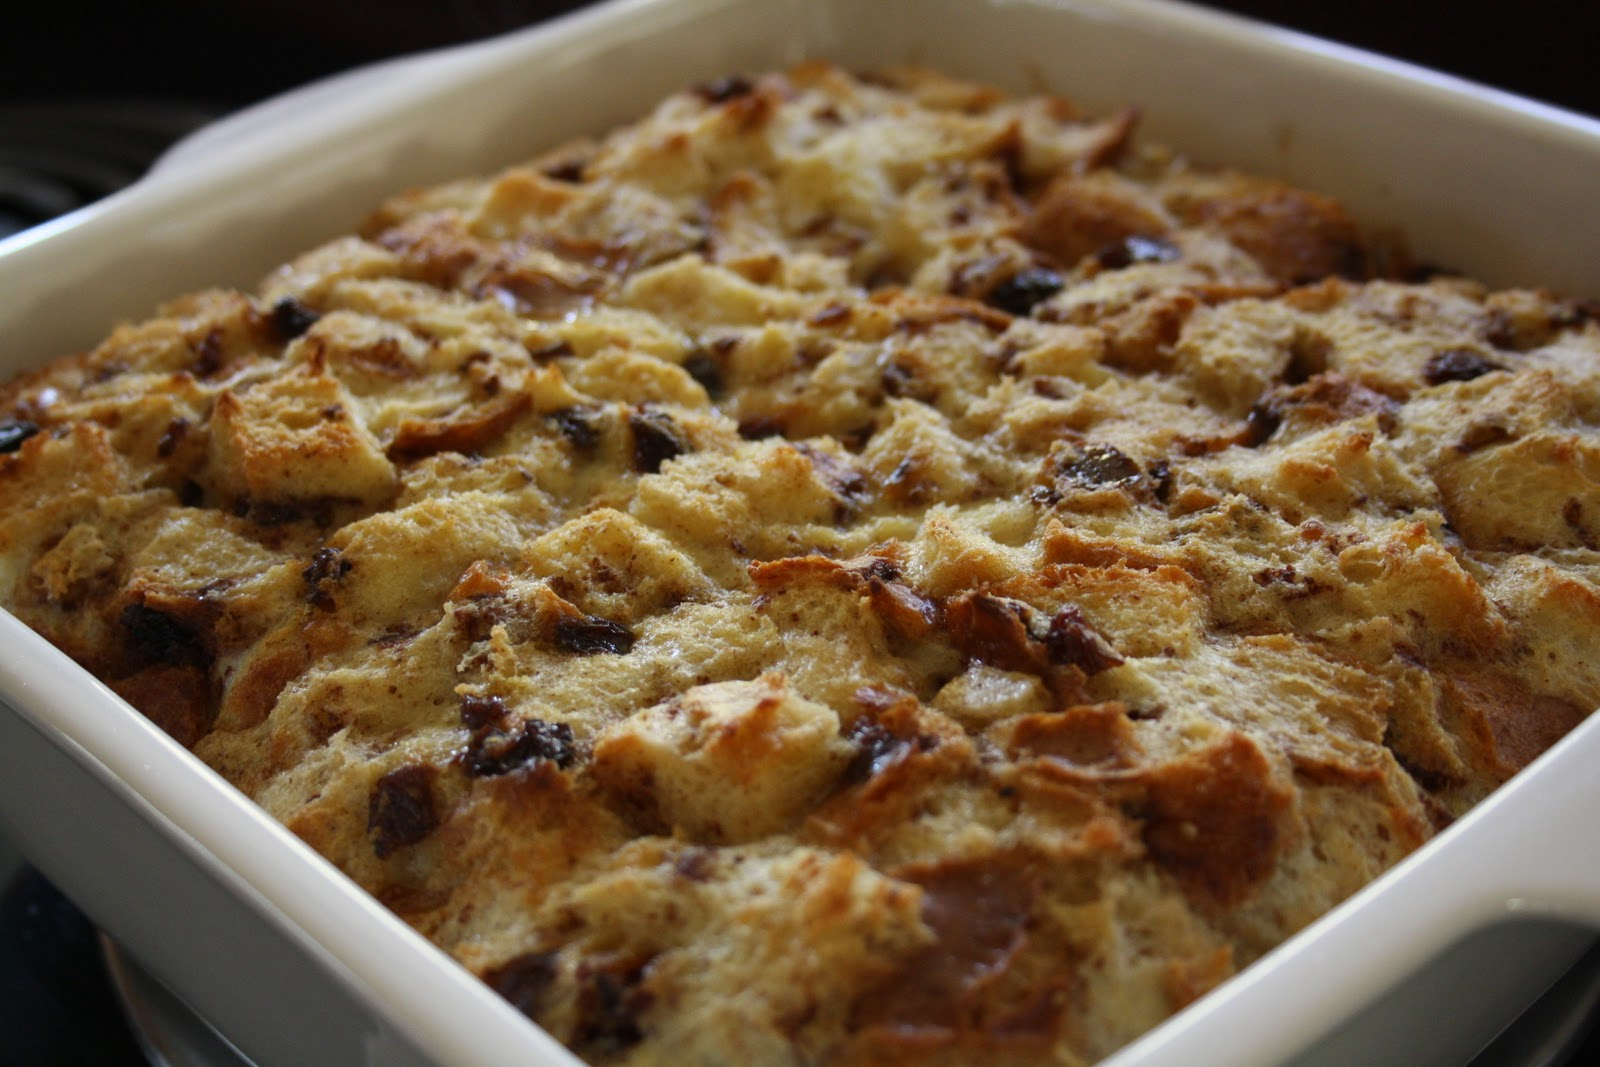 Meals with Michelle: Cinnamon Raisin Bread Pudding